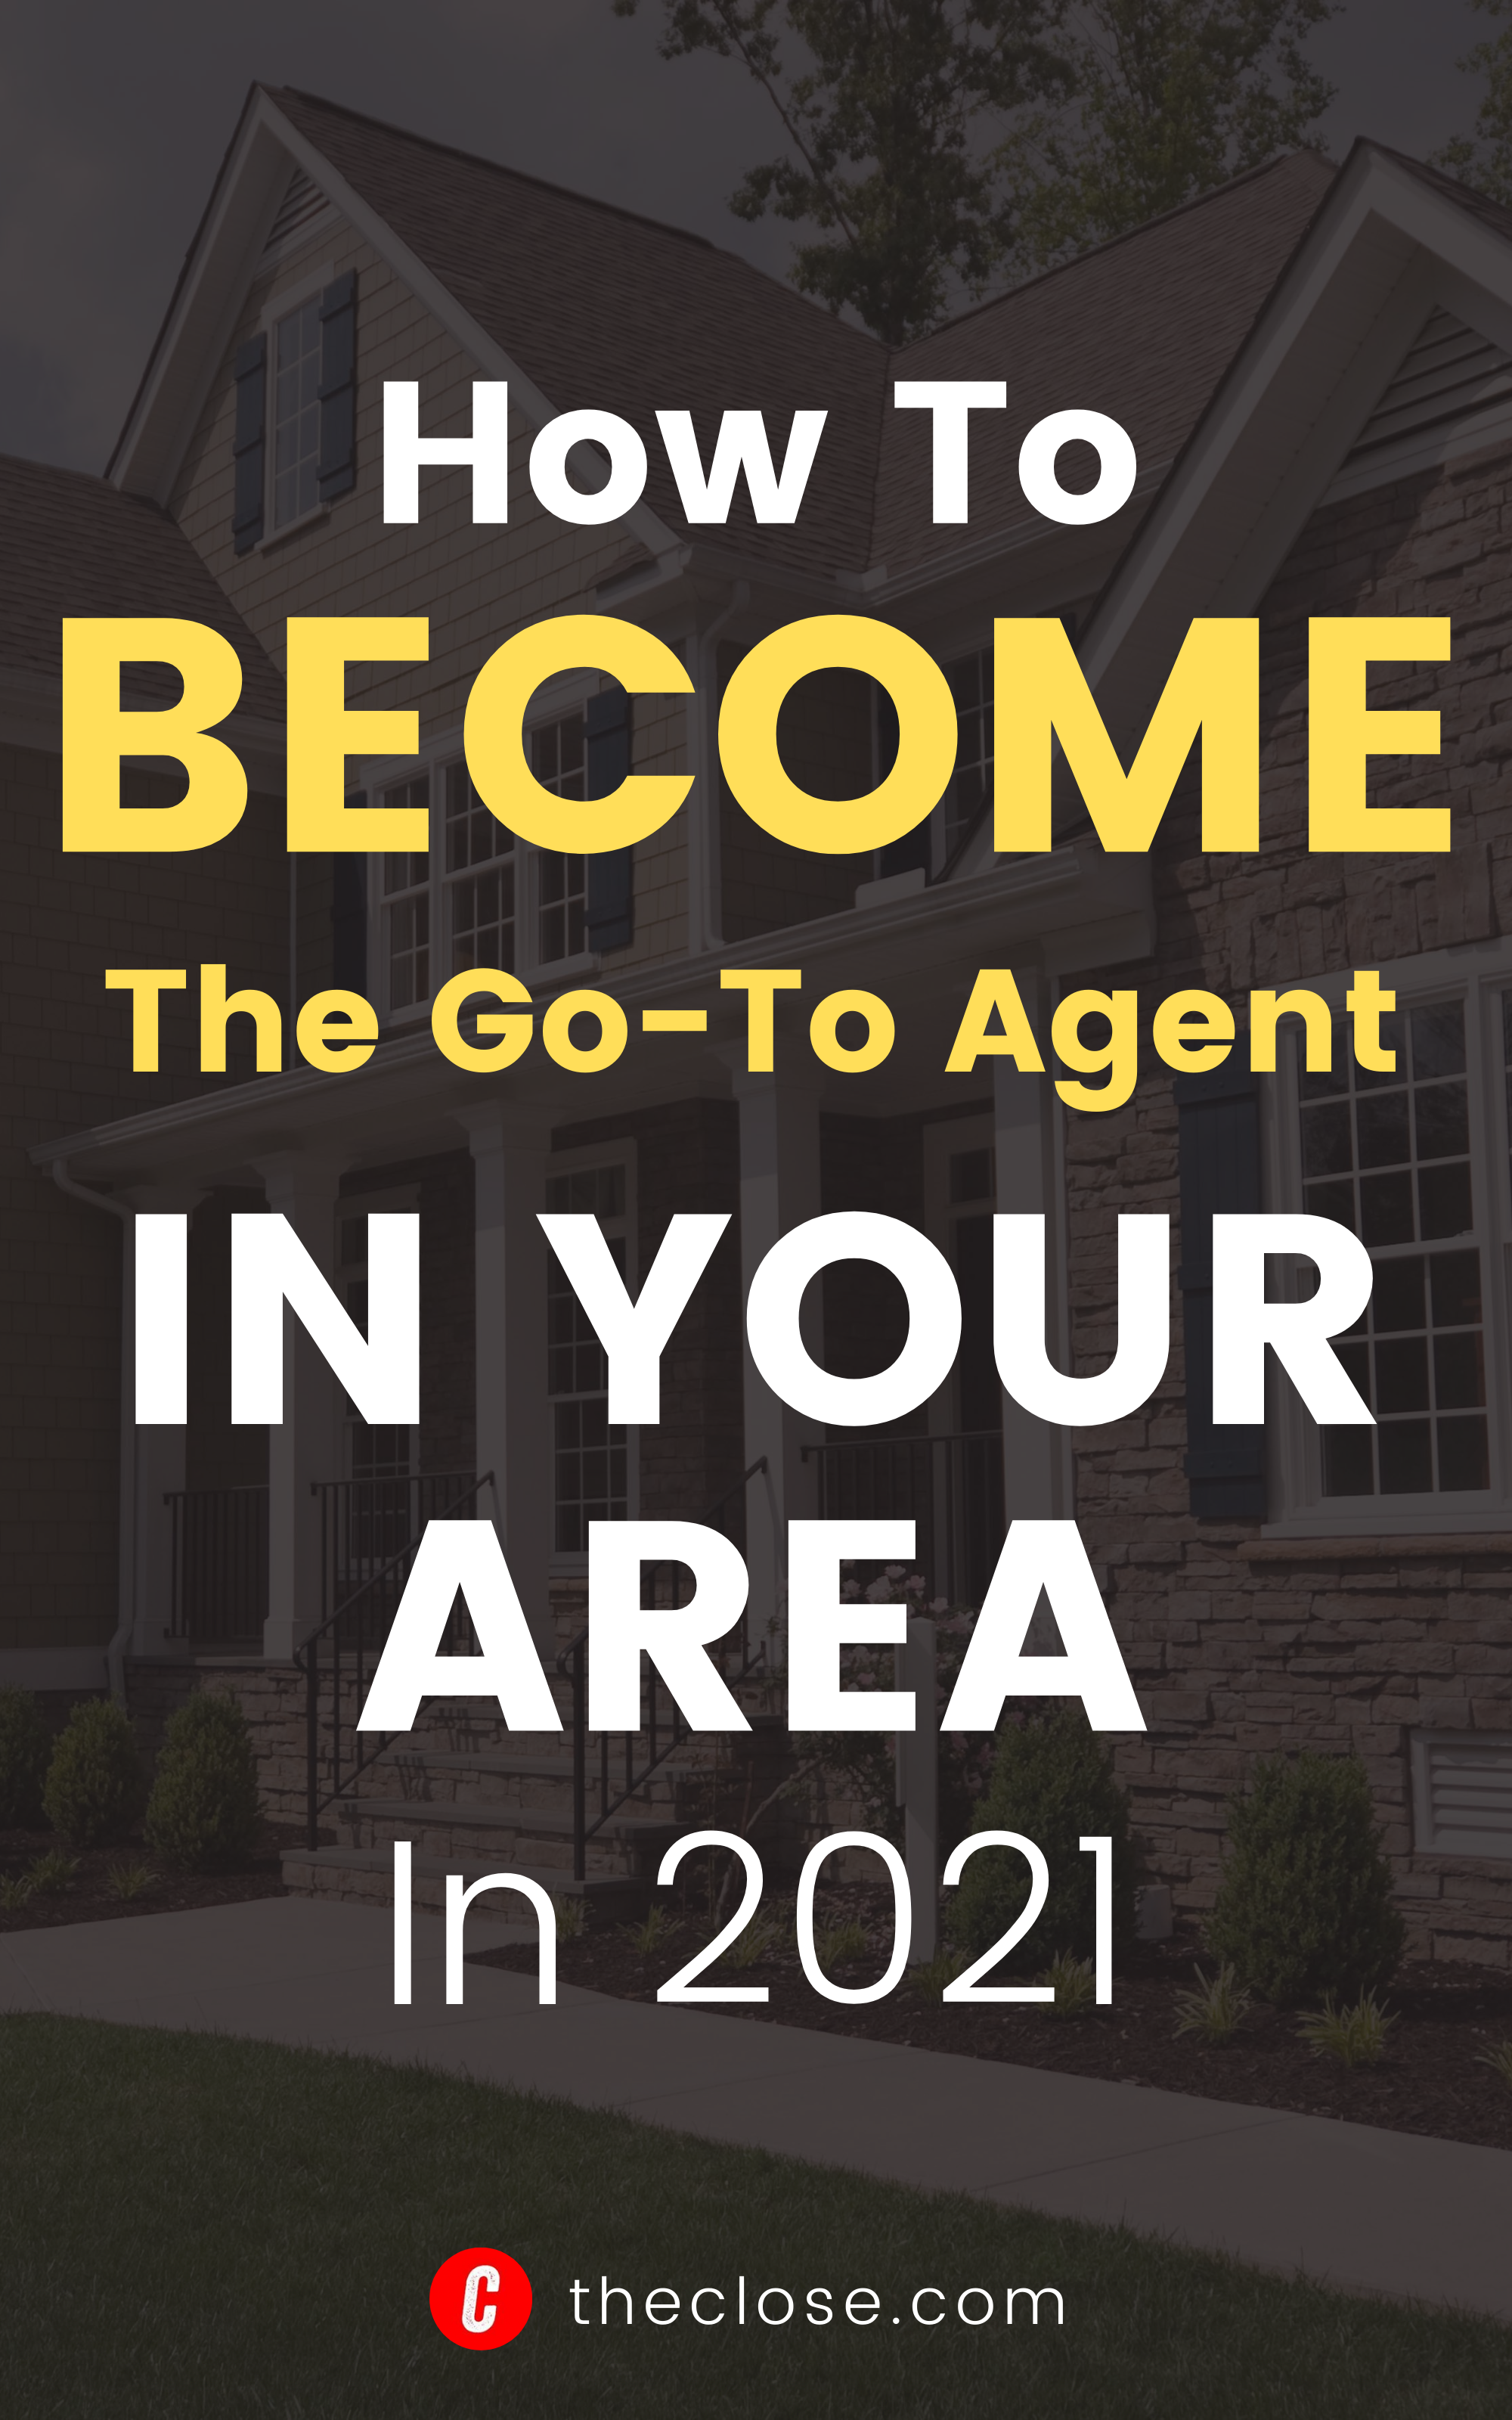 Learn how to position yourself as the go-to real estate agent in your neighborhood! Start generating more leads and build your brand with this real estate farming guide. Click to read more! #realestate #realestatestrategy #realestatefarming #realestatemarketing #marketingideas #creativemarketing #realestateagent #FarmingGuide #theclose